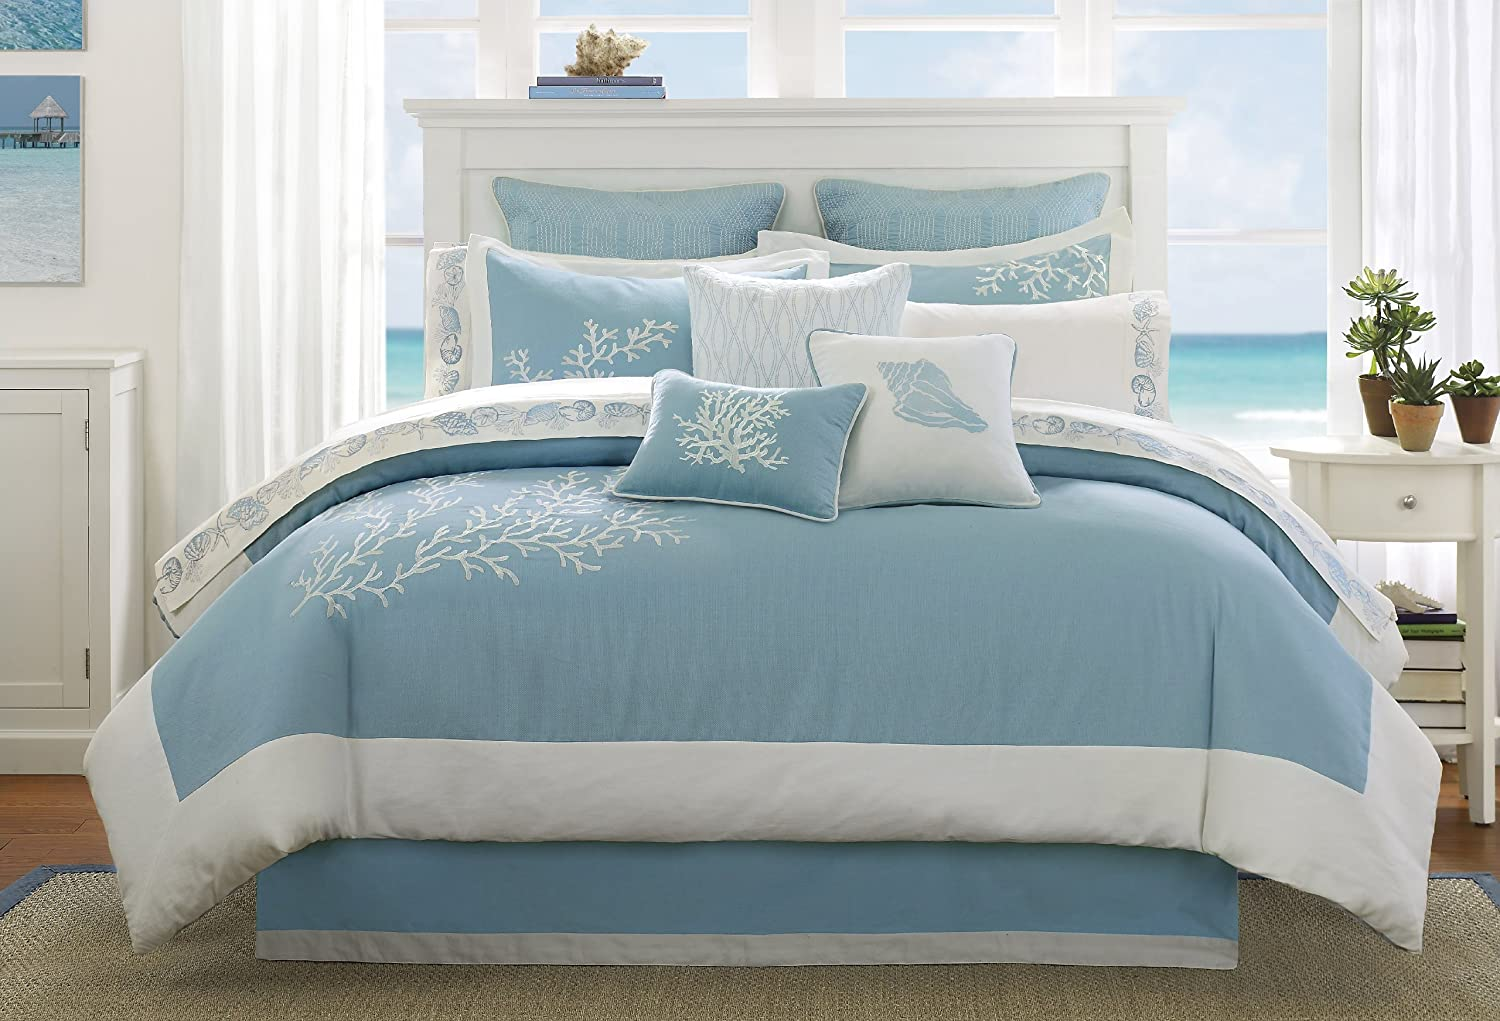 Blue and white bedding - Coastline Queen Comforter Set